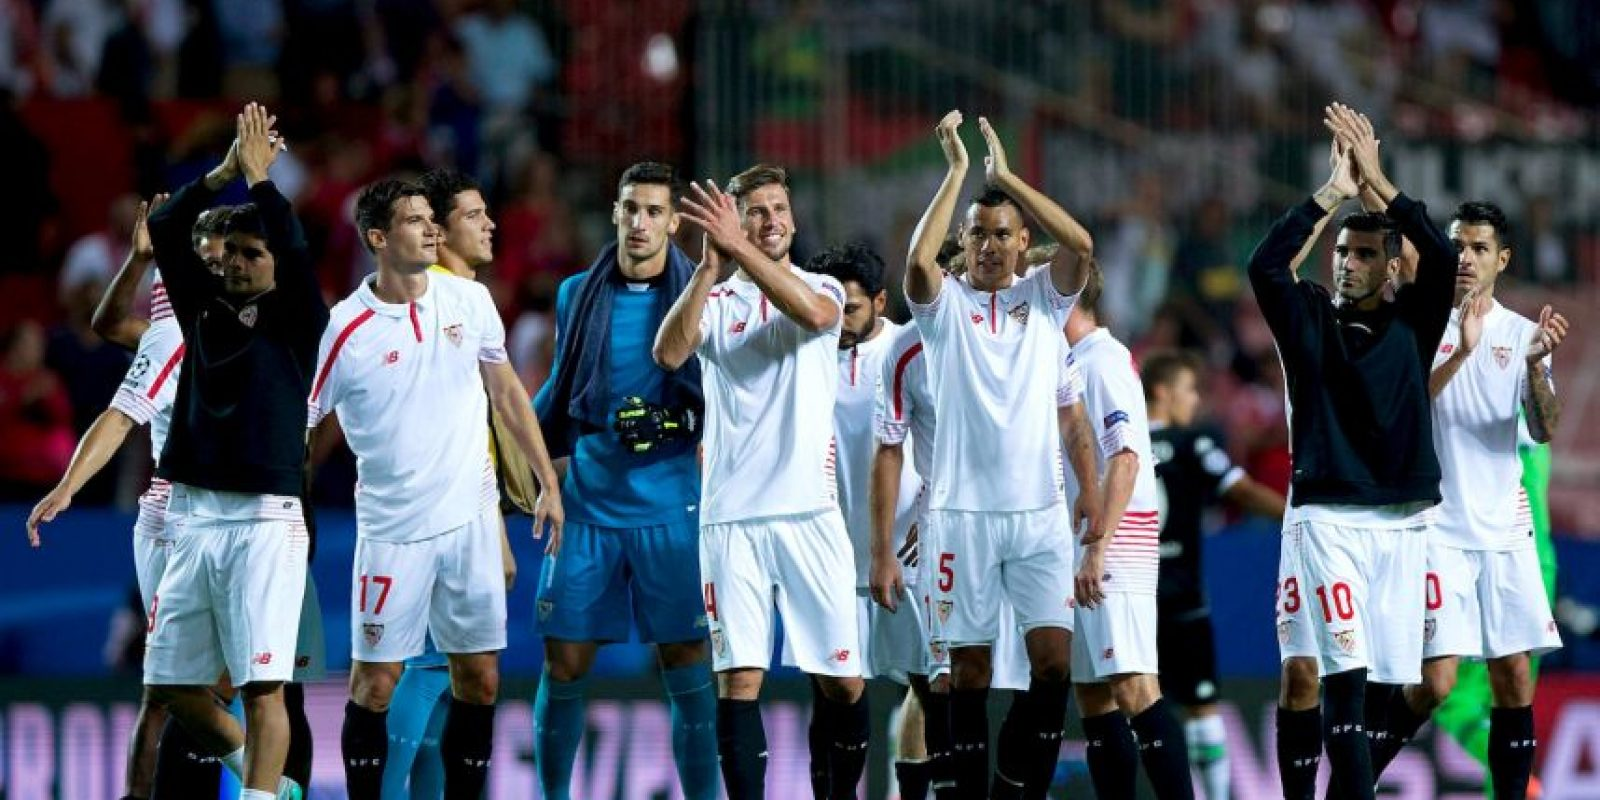 Los sevillistas se impusieron 6-2 en el marcador global al Celta de Vigo Foto: Getty Images